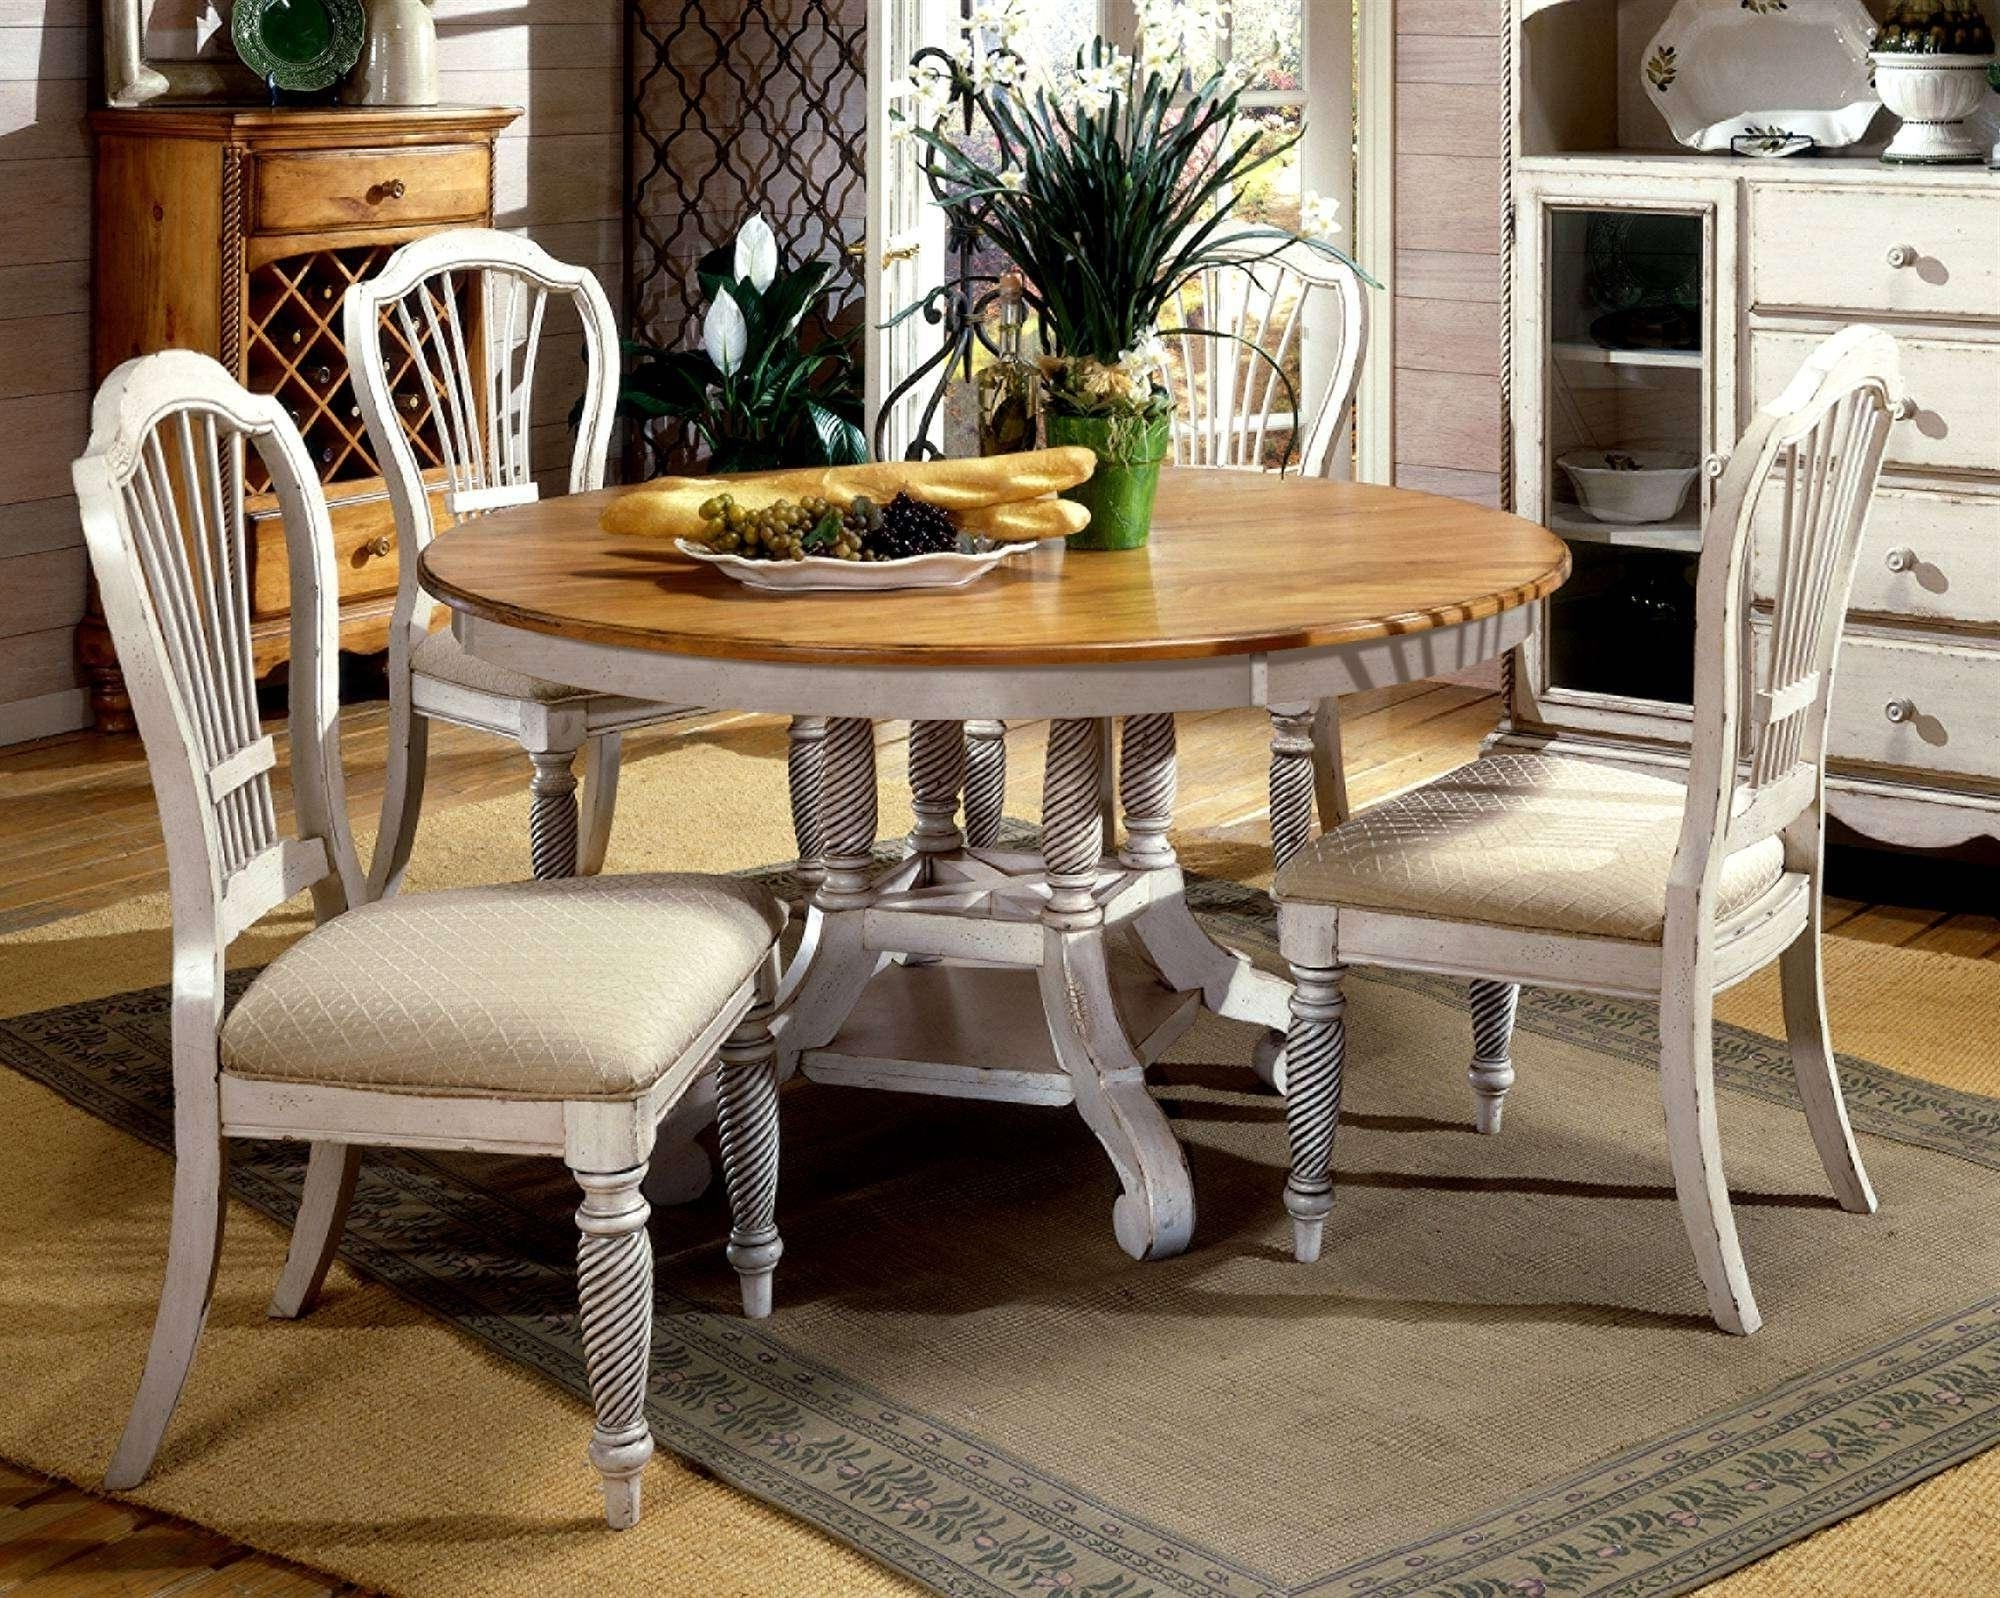 Widely Used The 21 Awesome Large Round Folding Dining Table – Welovedandelion Throughout Huge Round Dining Tables (View 25 of 25)